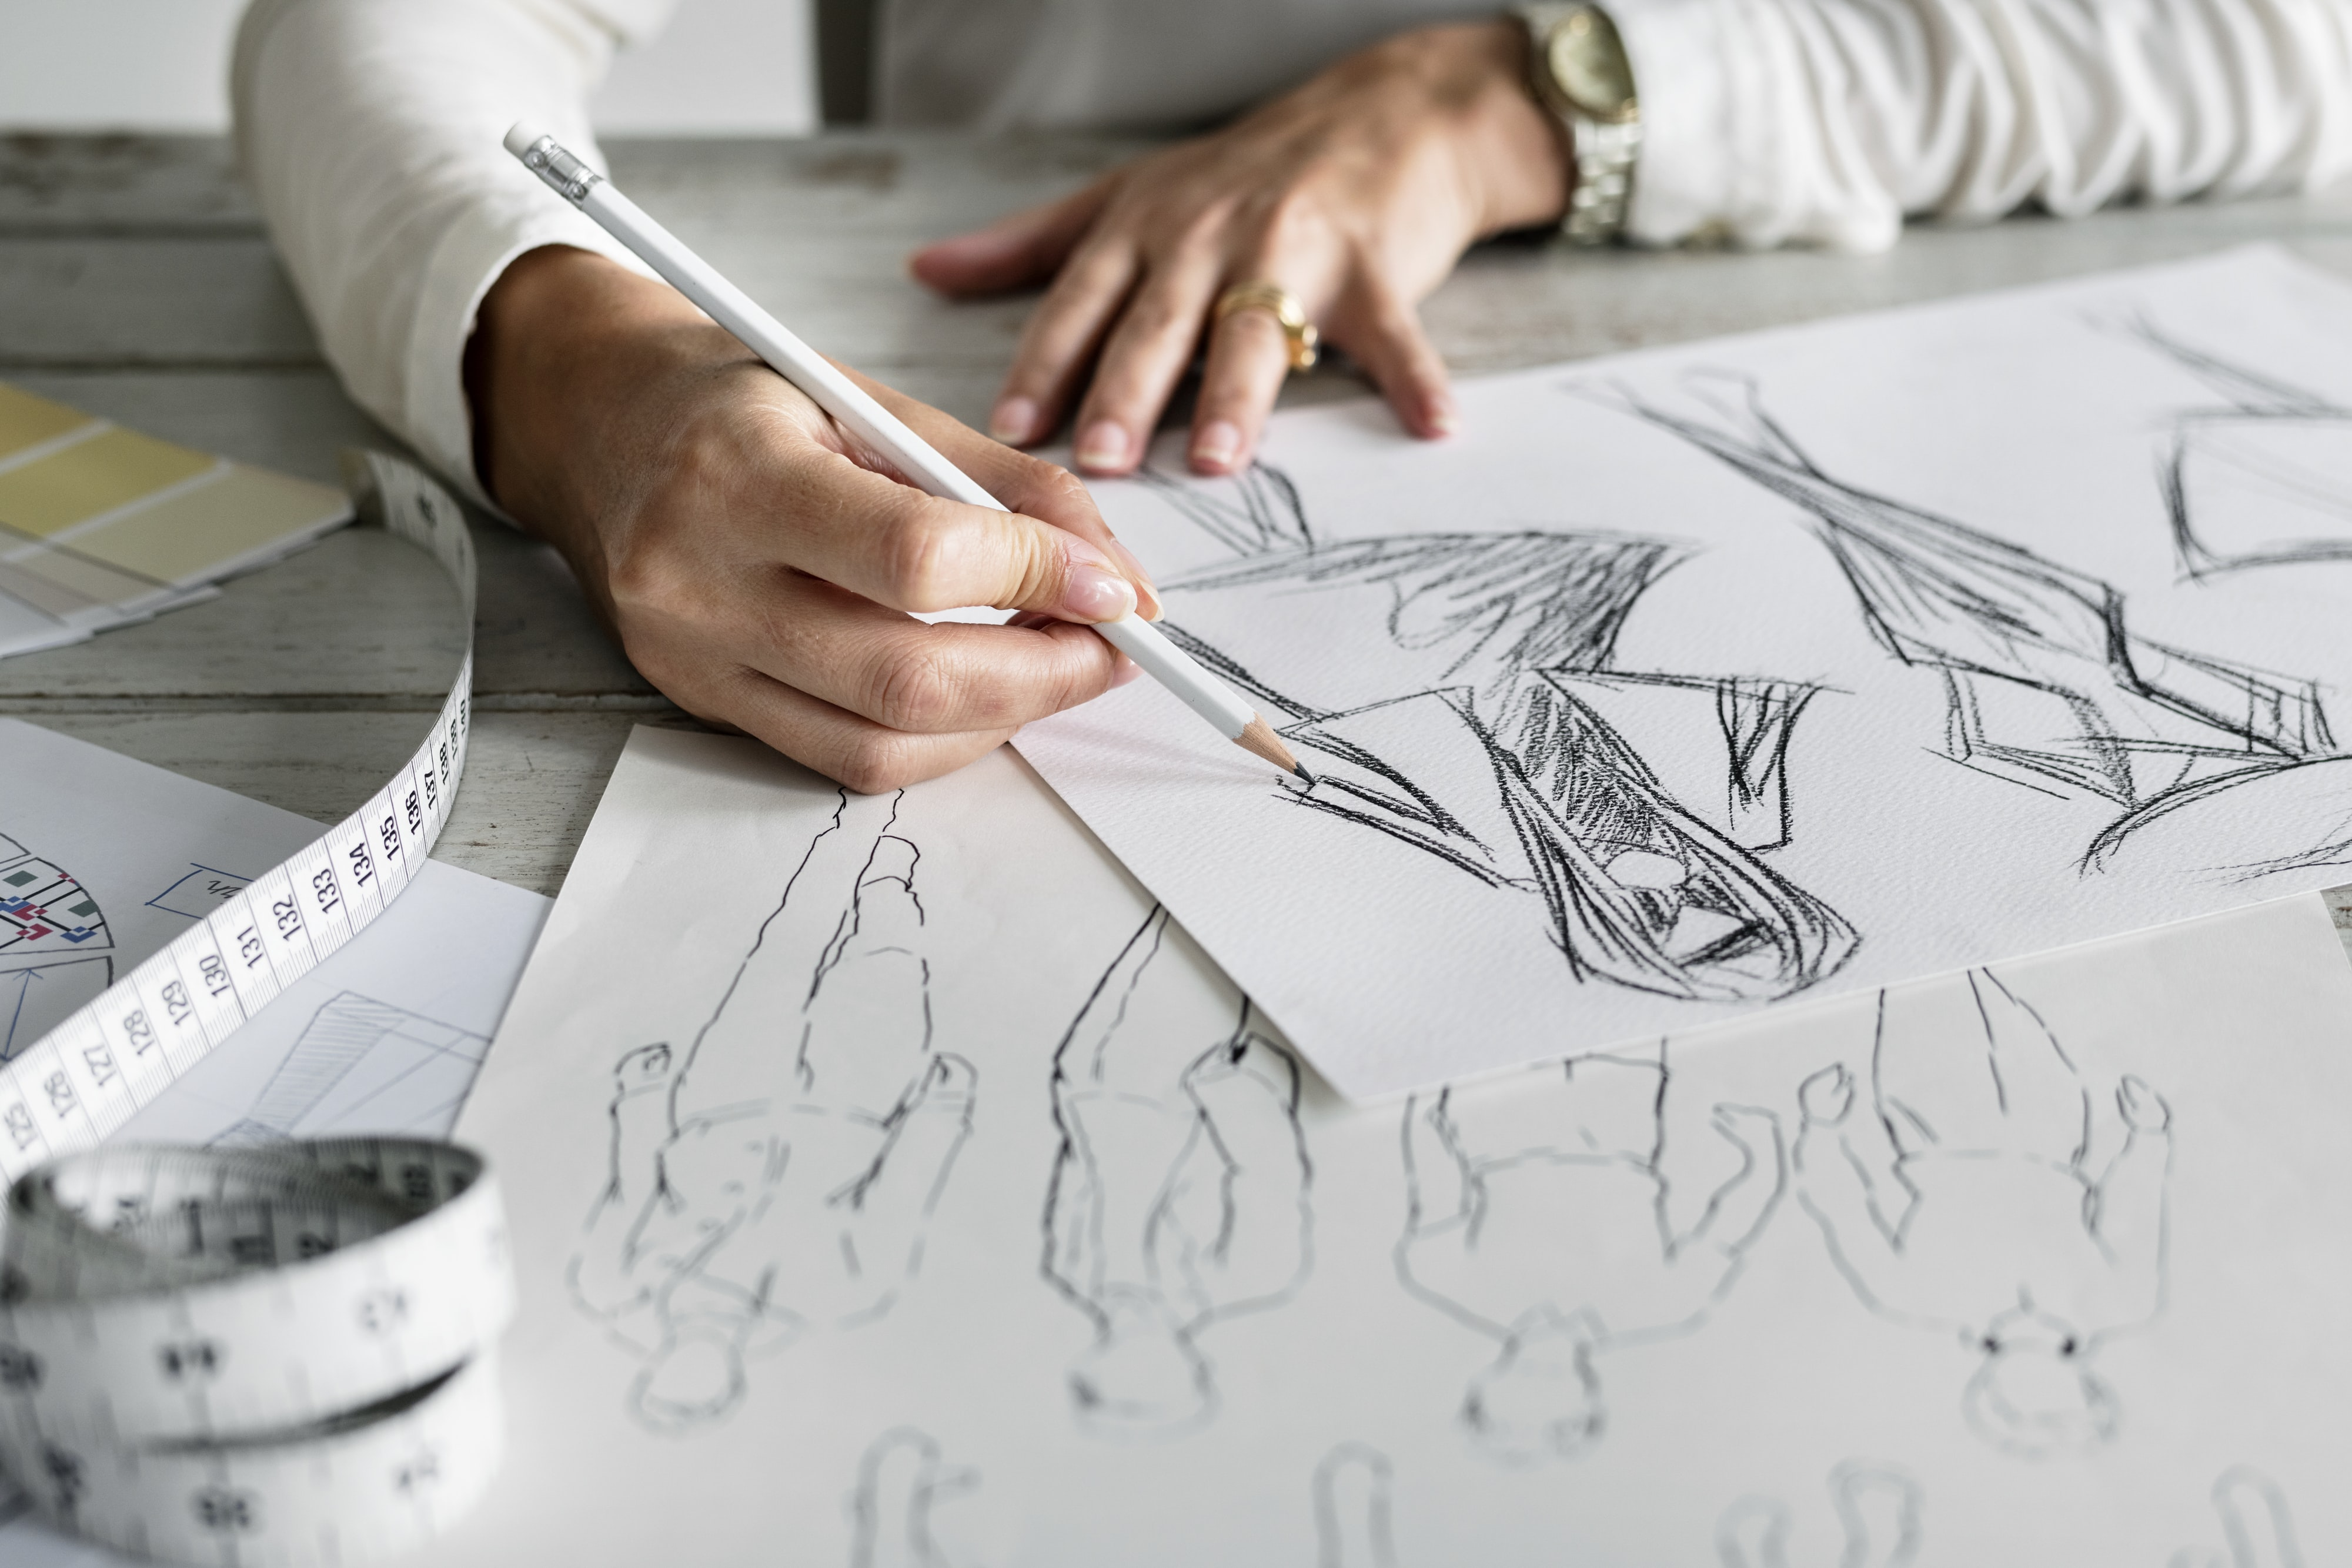 person writing a sketch art